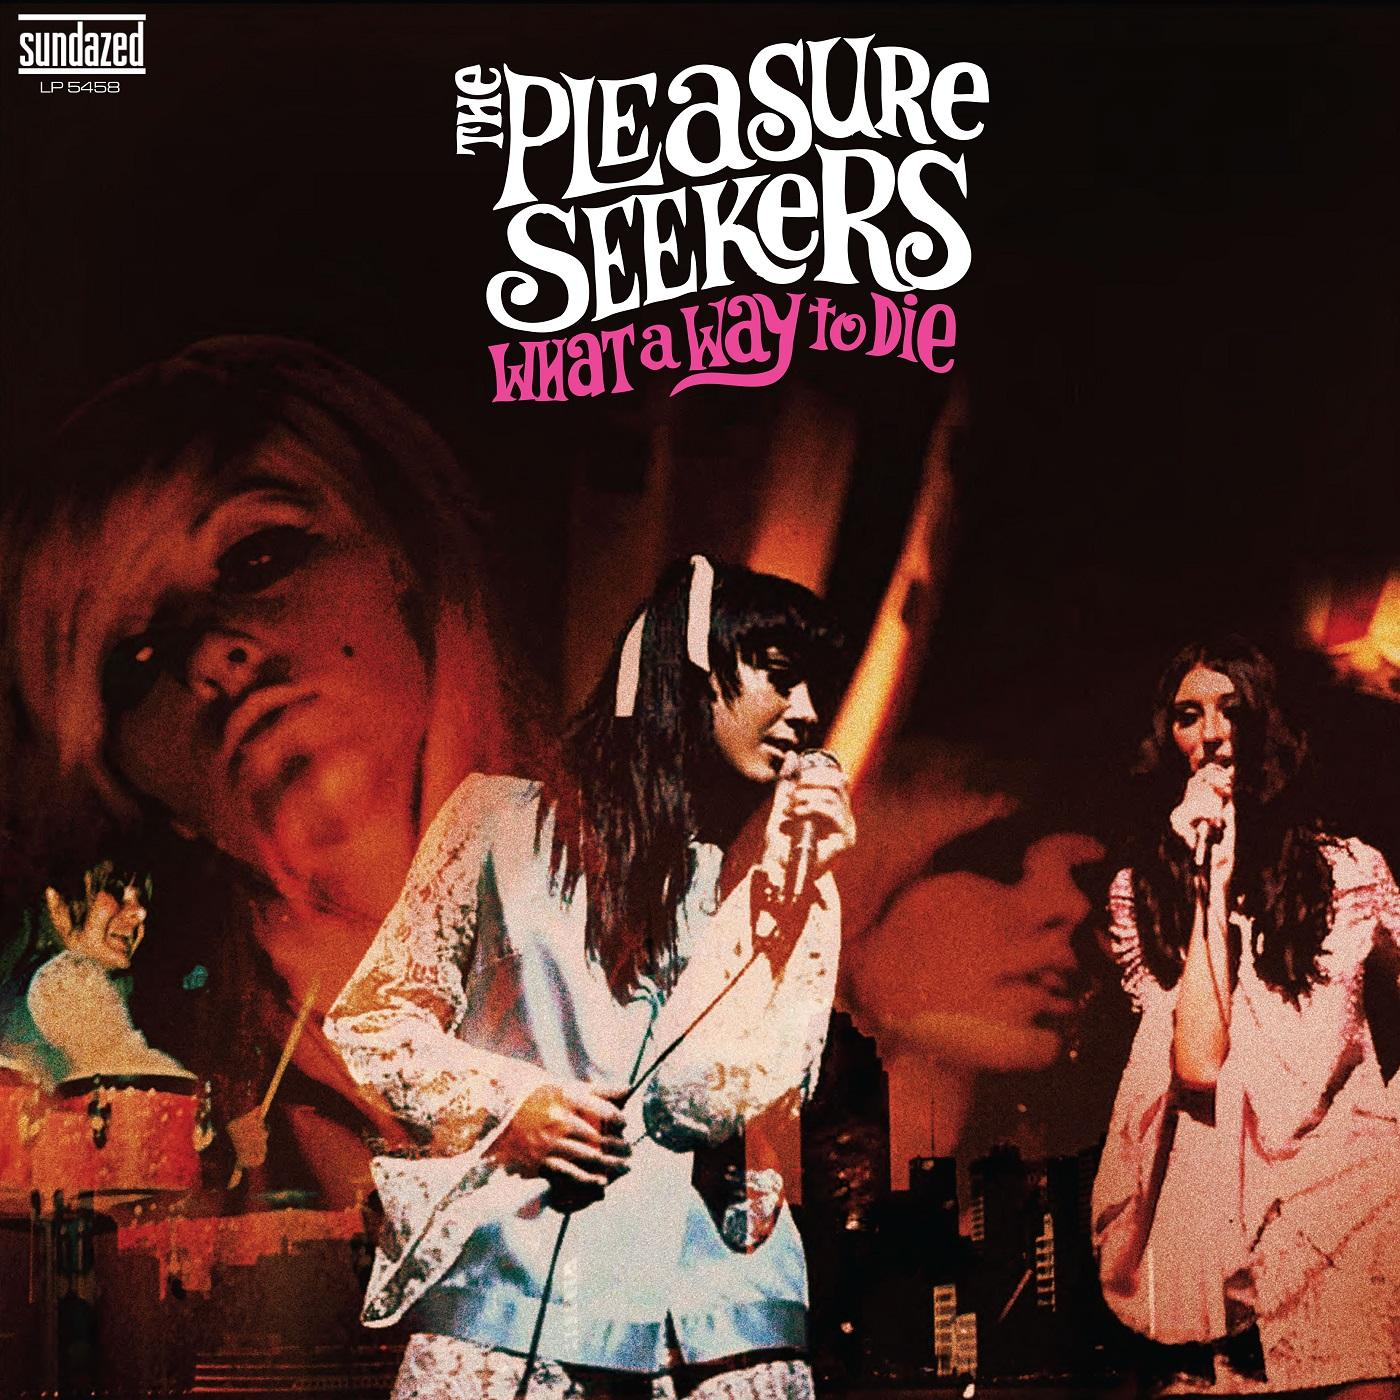 Pleasure Seekers, The - What A Way To Die - LP